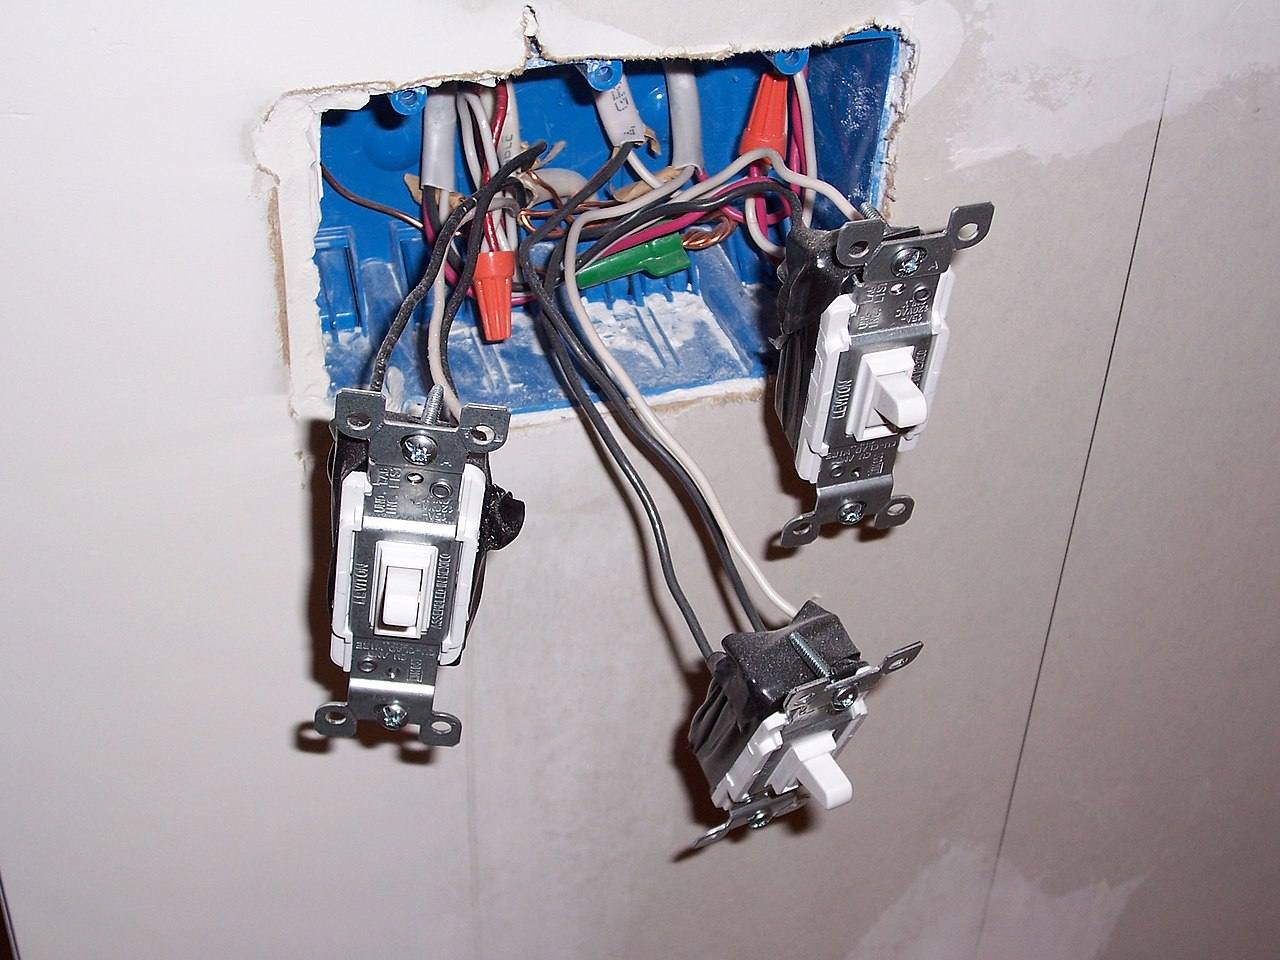 3 Light Switches Wiring - Trusted Wiring Diagram •